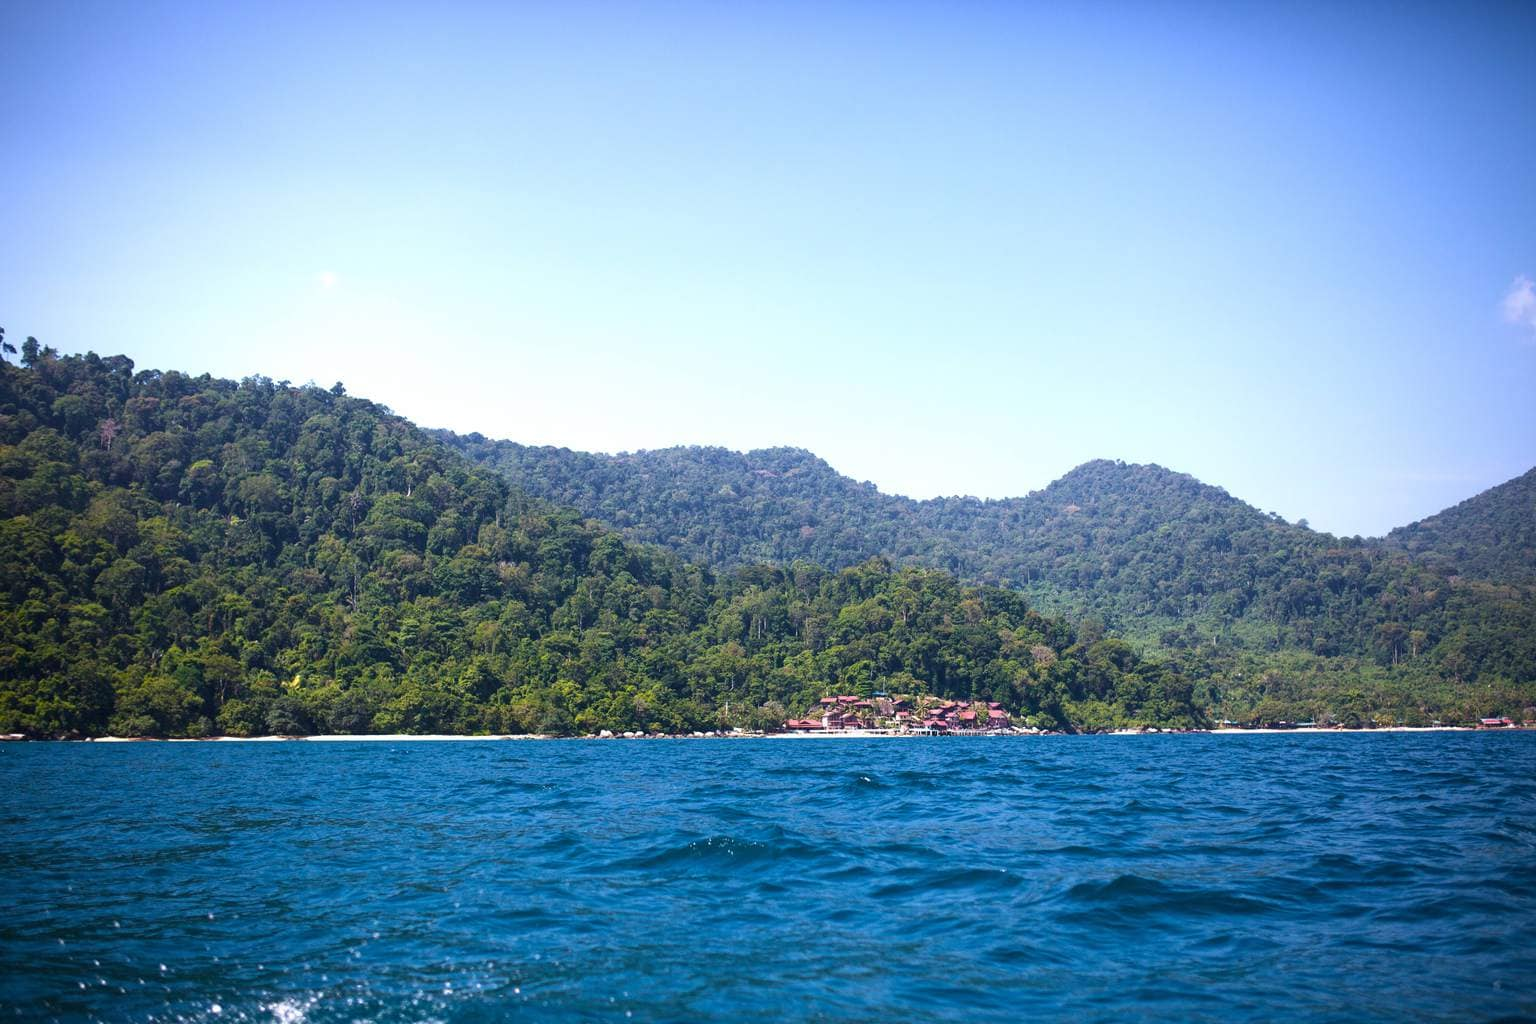 Tioman Island from the water